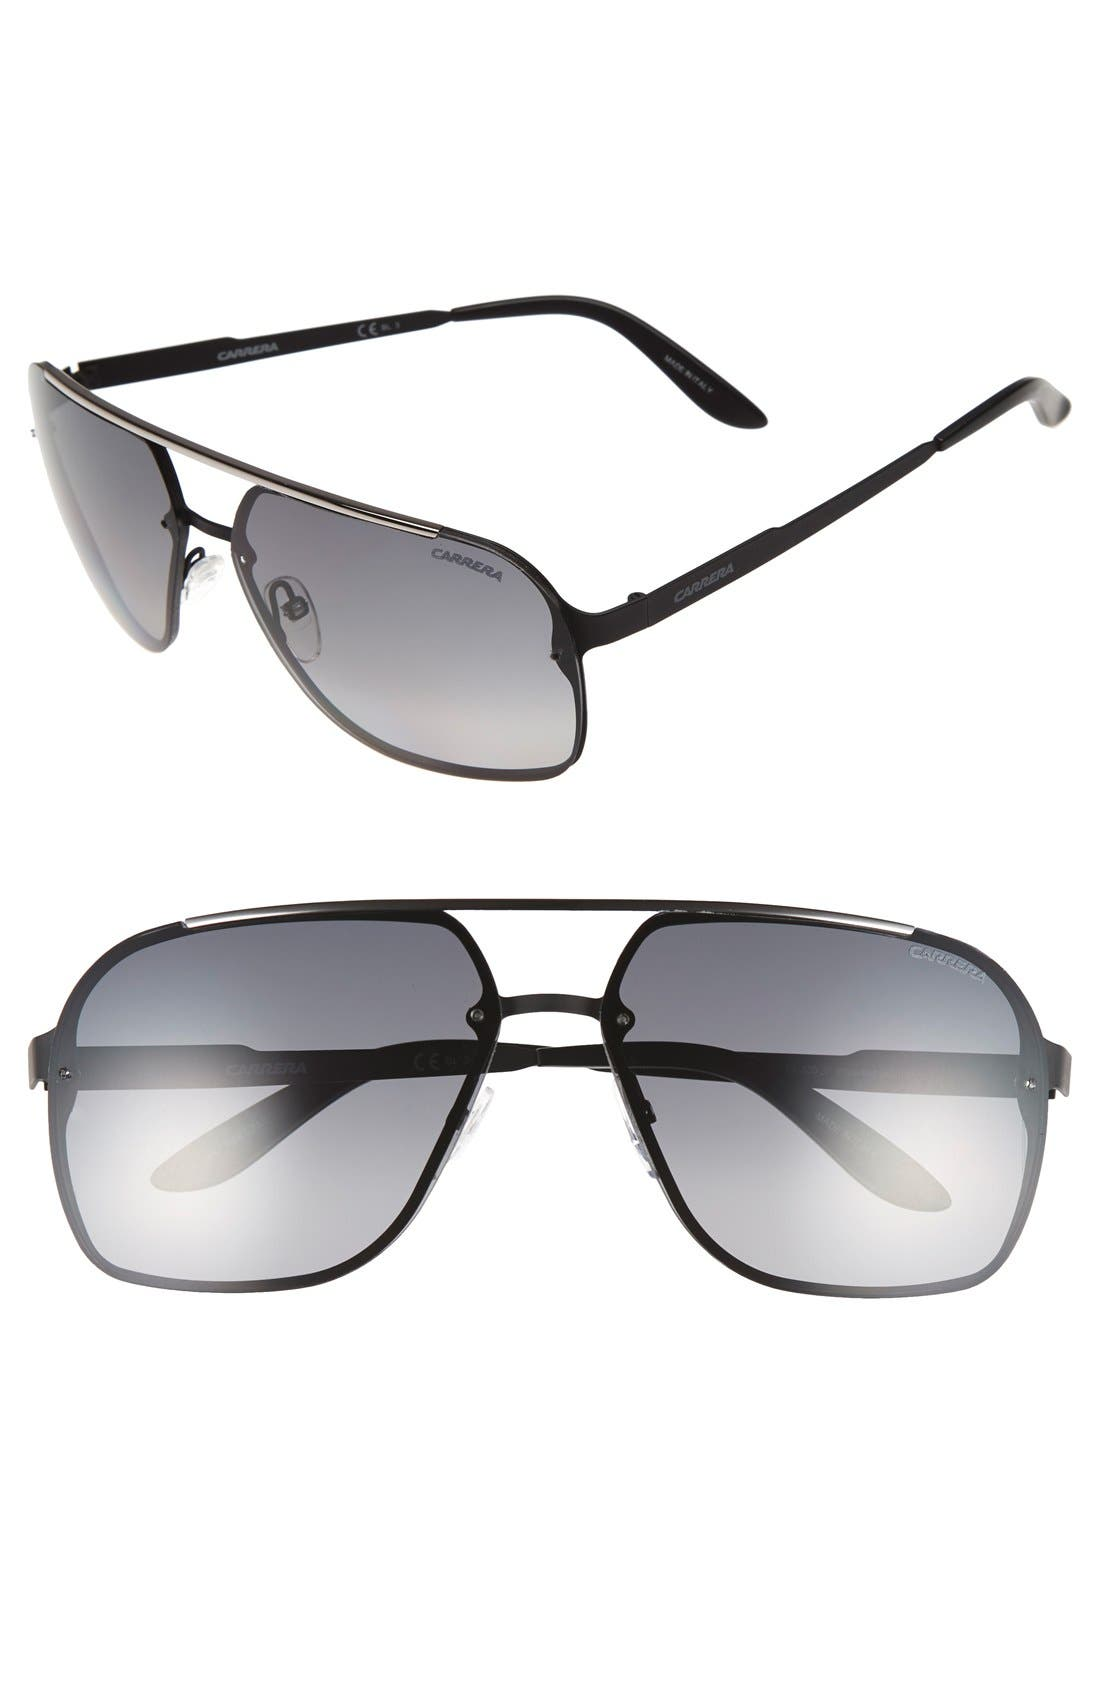 Alternate Image 1 Selected - Carrera Eyewear '91/S' 64mm Polarized Sunglasses